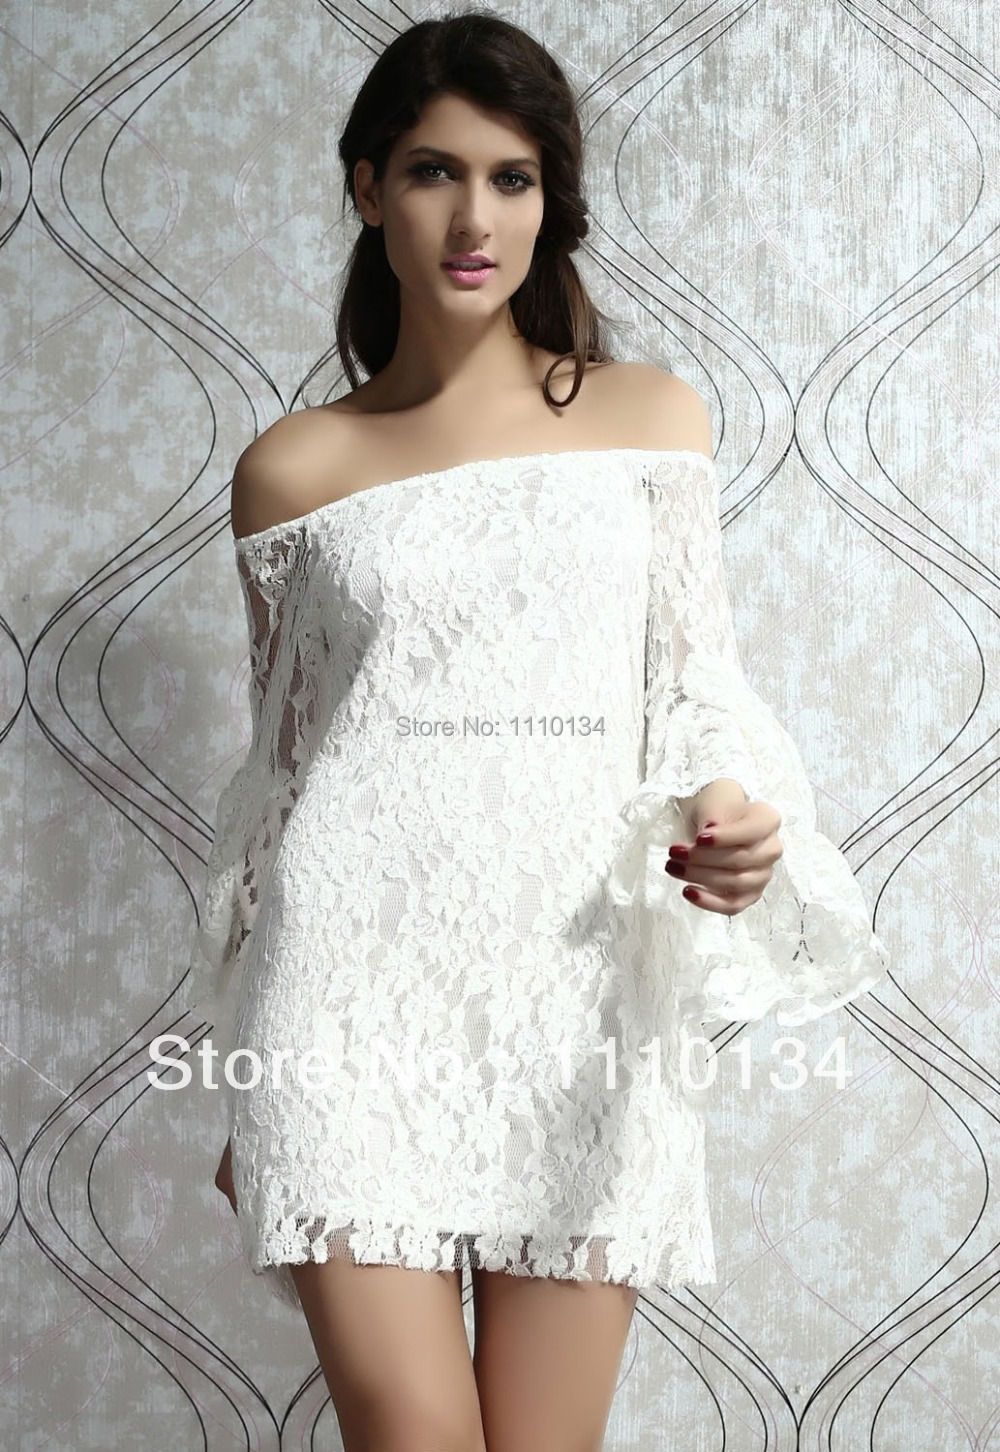 9ed4755ff58e 2016 Fashion New Arrival Cream Lace Off The Shoulder Mini Dress White  Summer Casual Dress For Women 0468-in Dresses from Women s Clothing on  Aliexpress.com ...